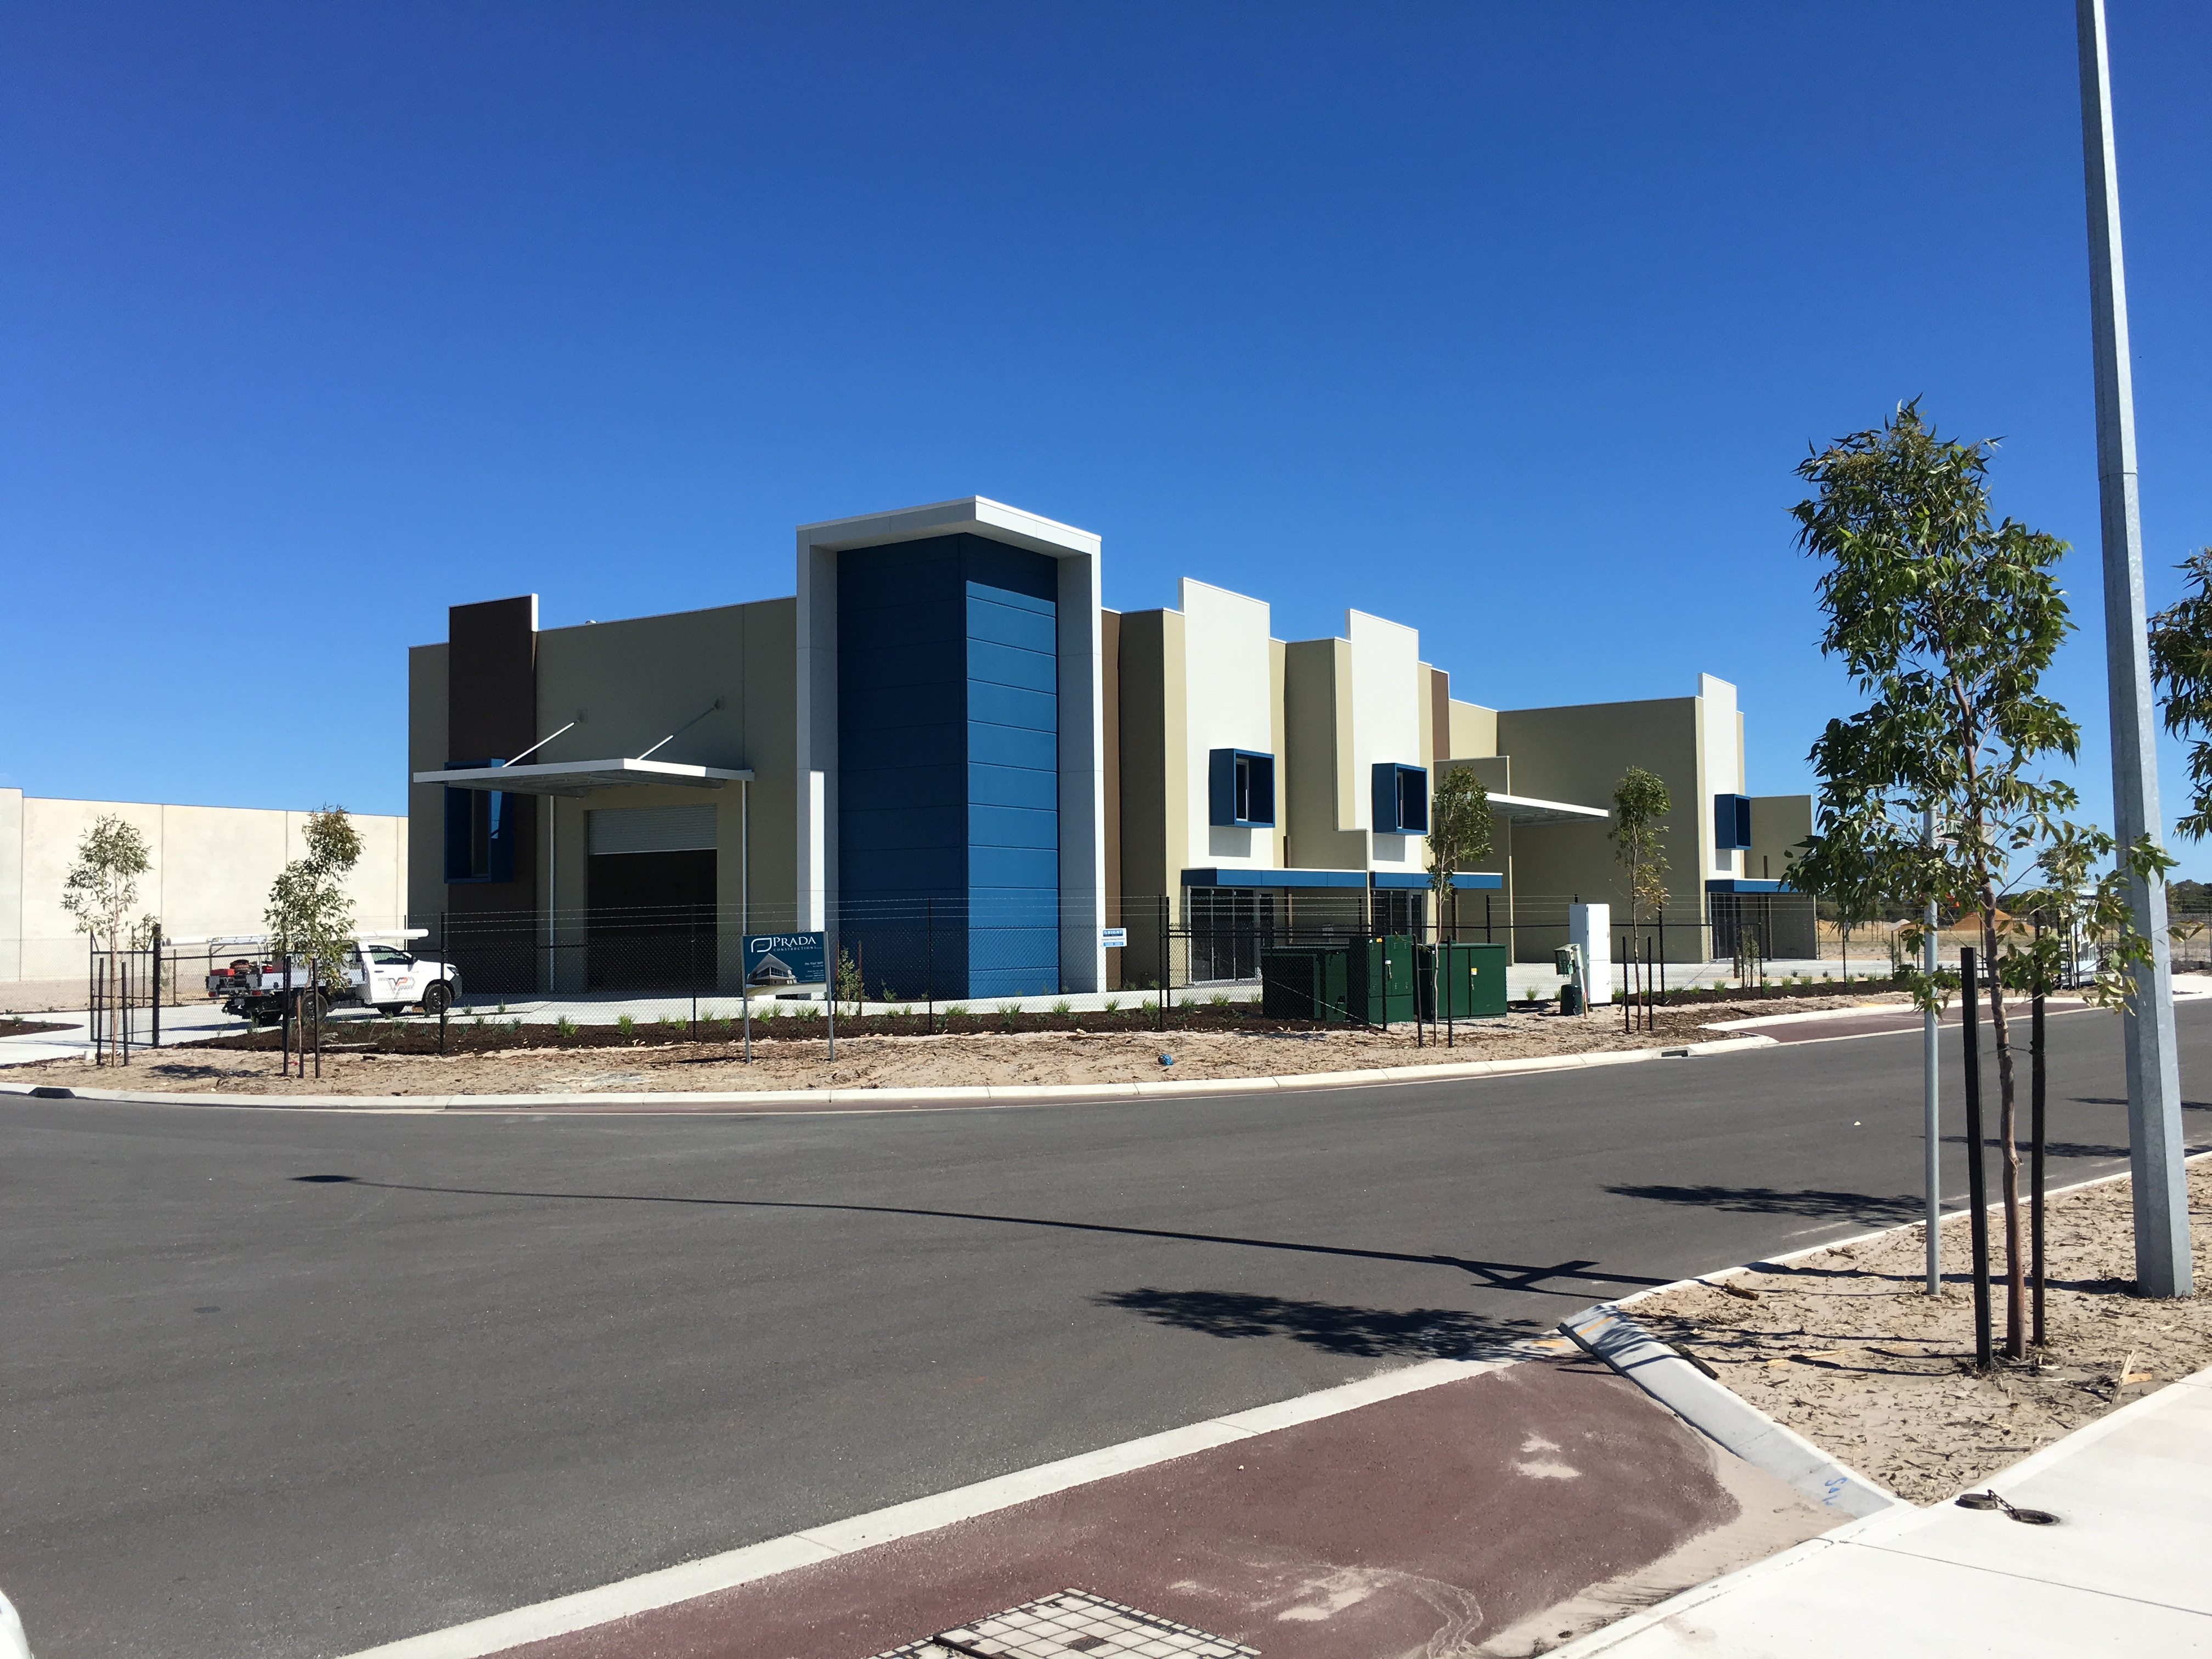 Exterior shot of block of commercial warehouse units, painted in blue, browns and white